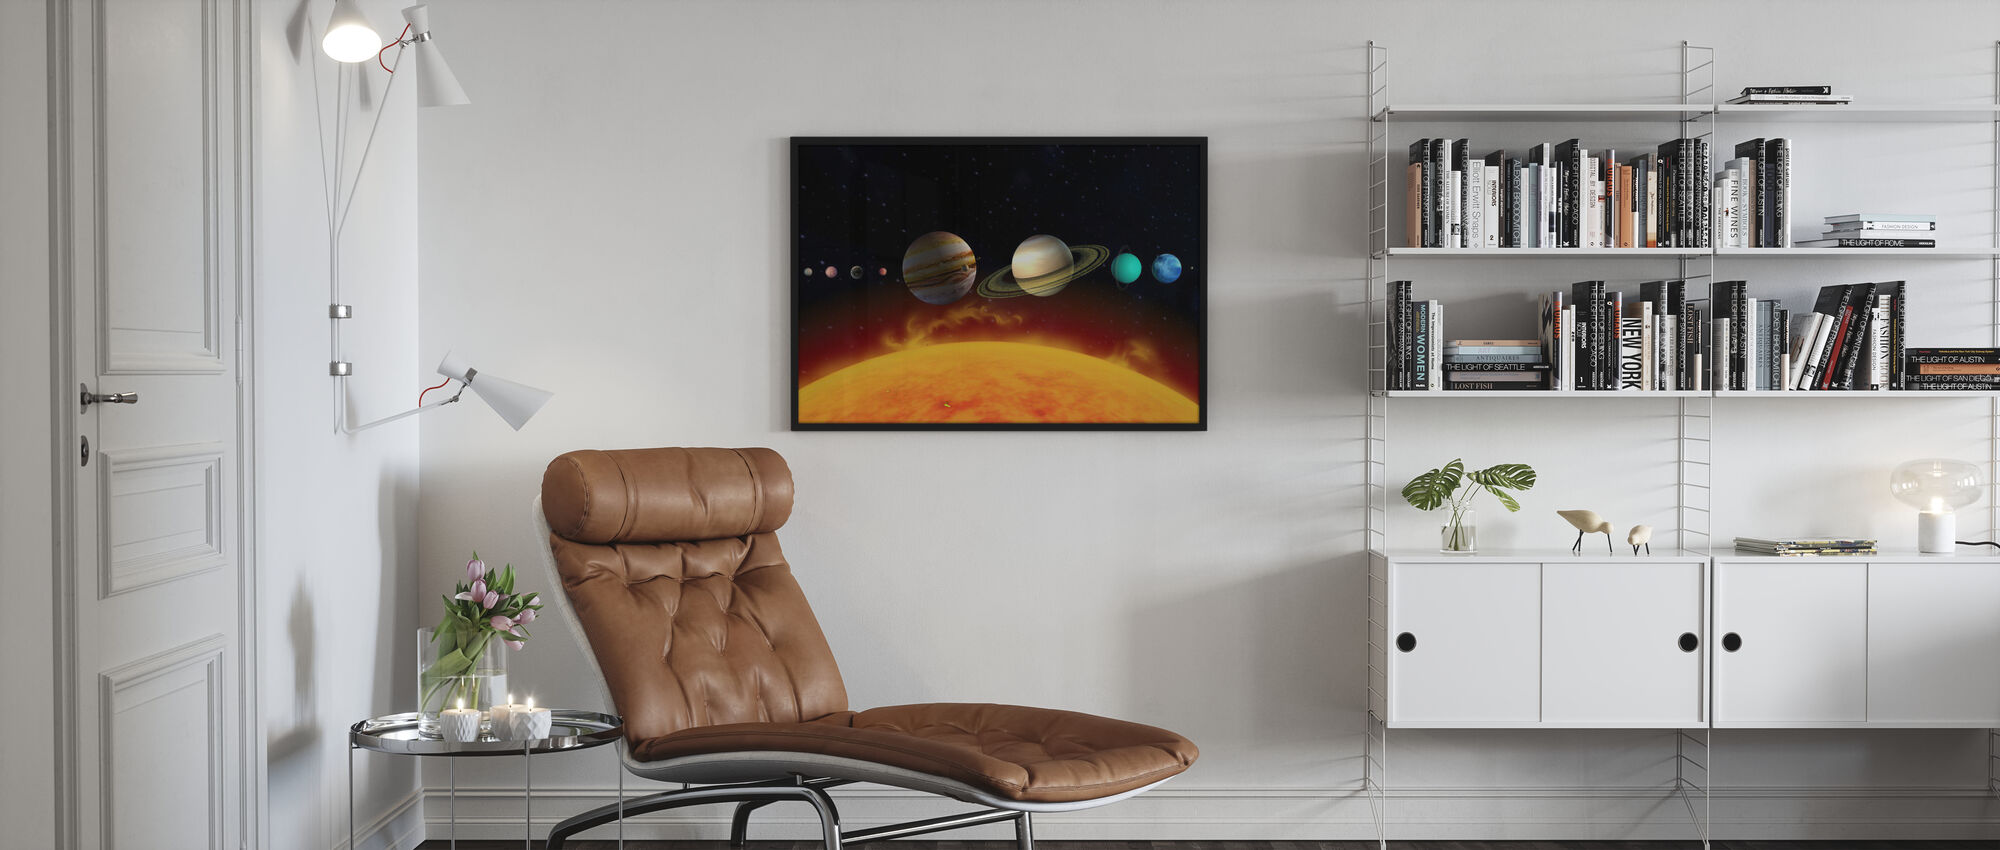 Sun and Planets - Poster - Living Room